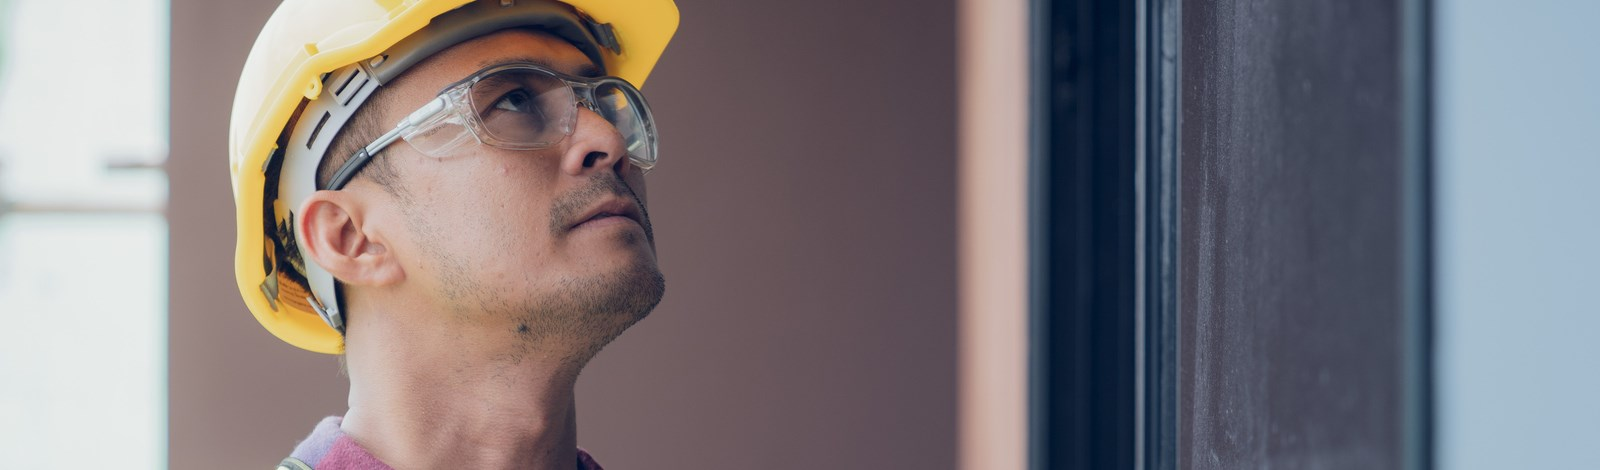 Construction Inspector with safety glasses and yellow hard hat